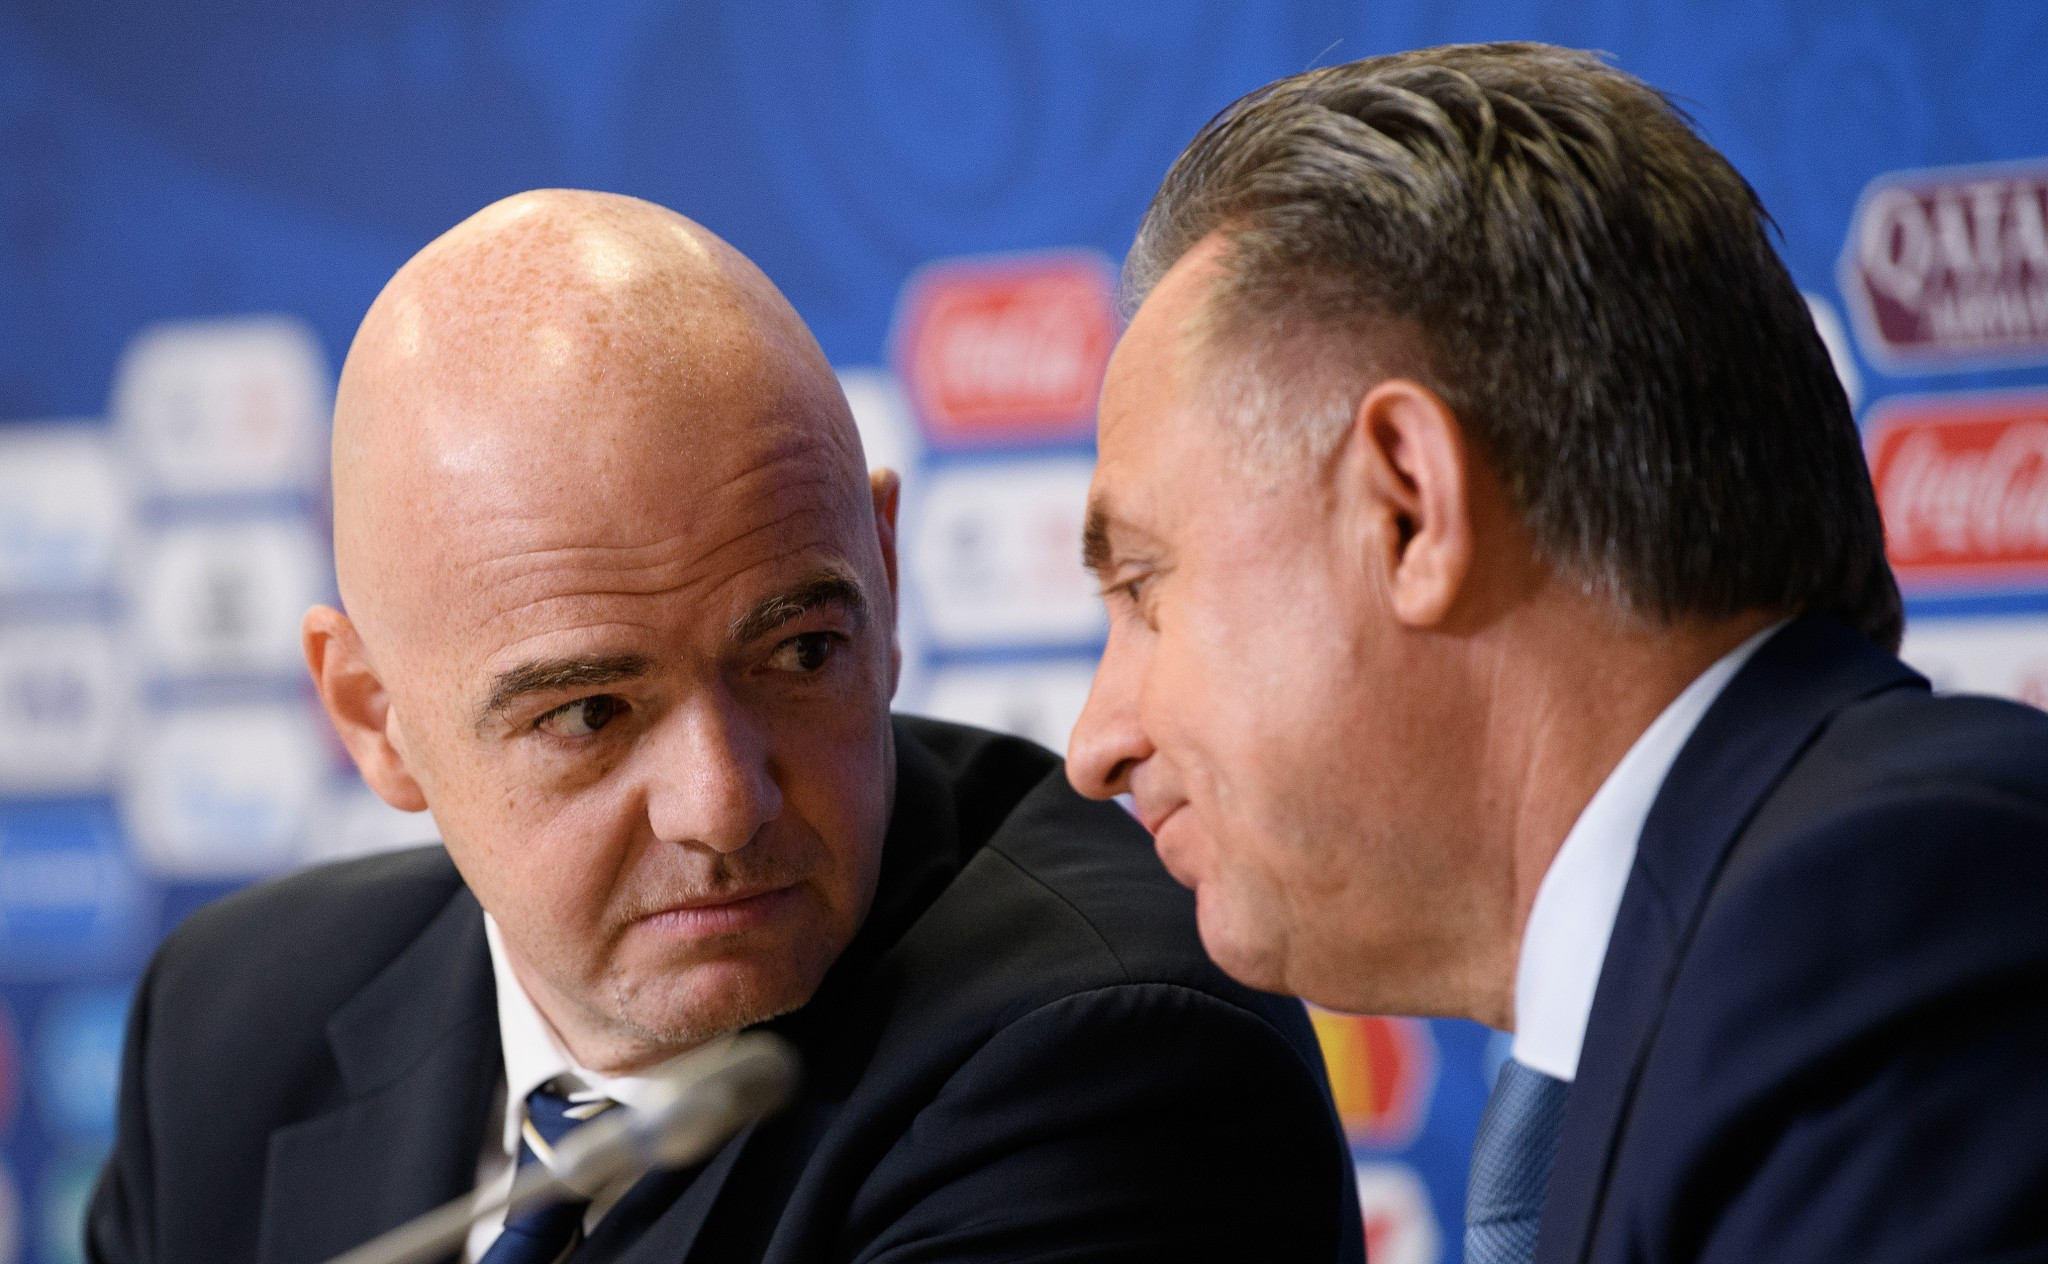 FIFA President Gianni Infantino, left, attempted to block a decision to prevent  Vitaly Mutko, right, from standing for re-election to the Council because he was part of the Russian Government ©Getty Images